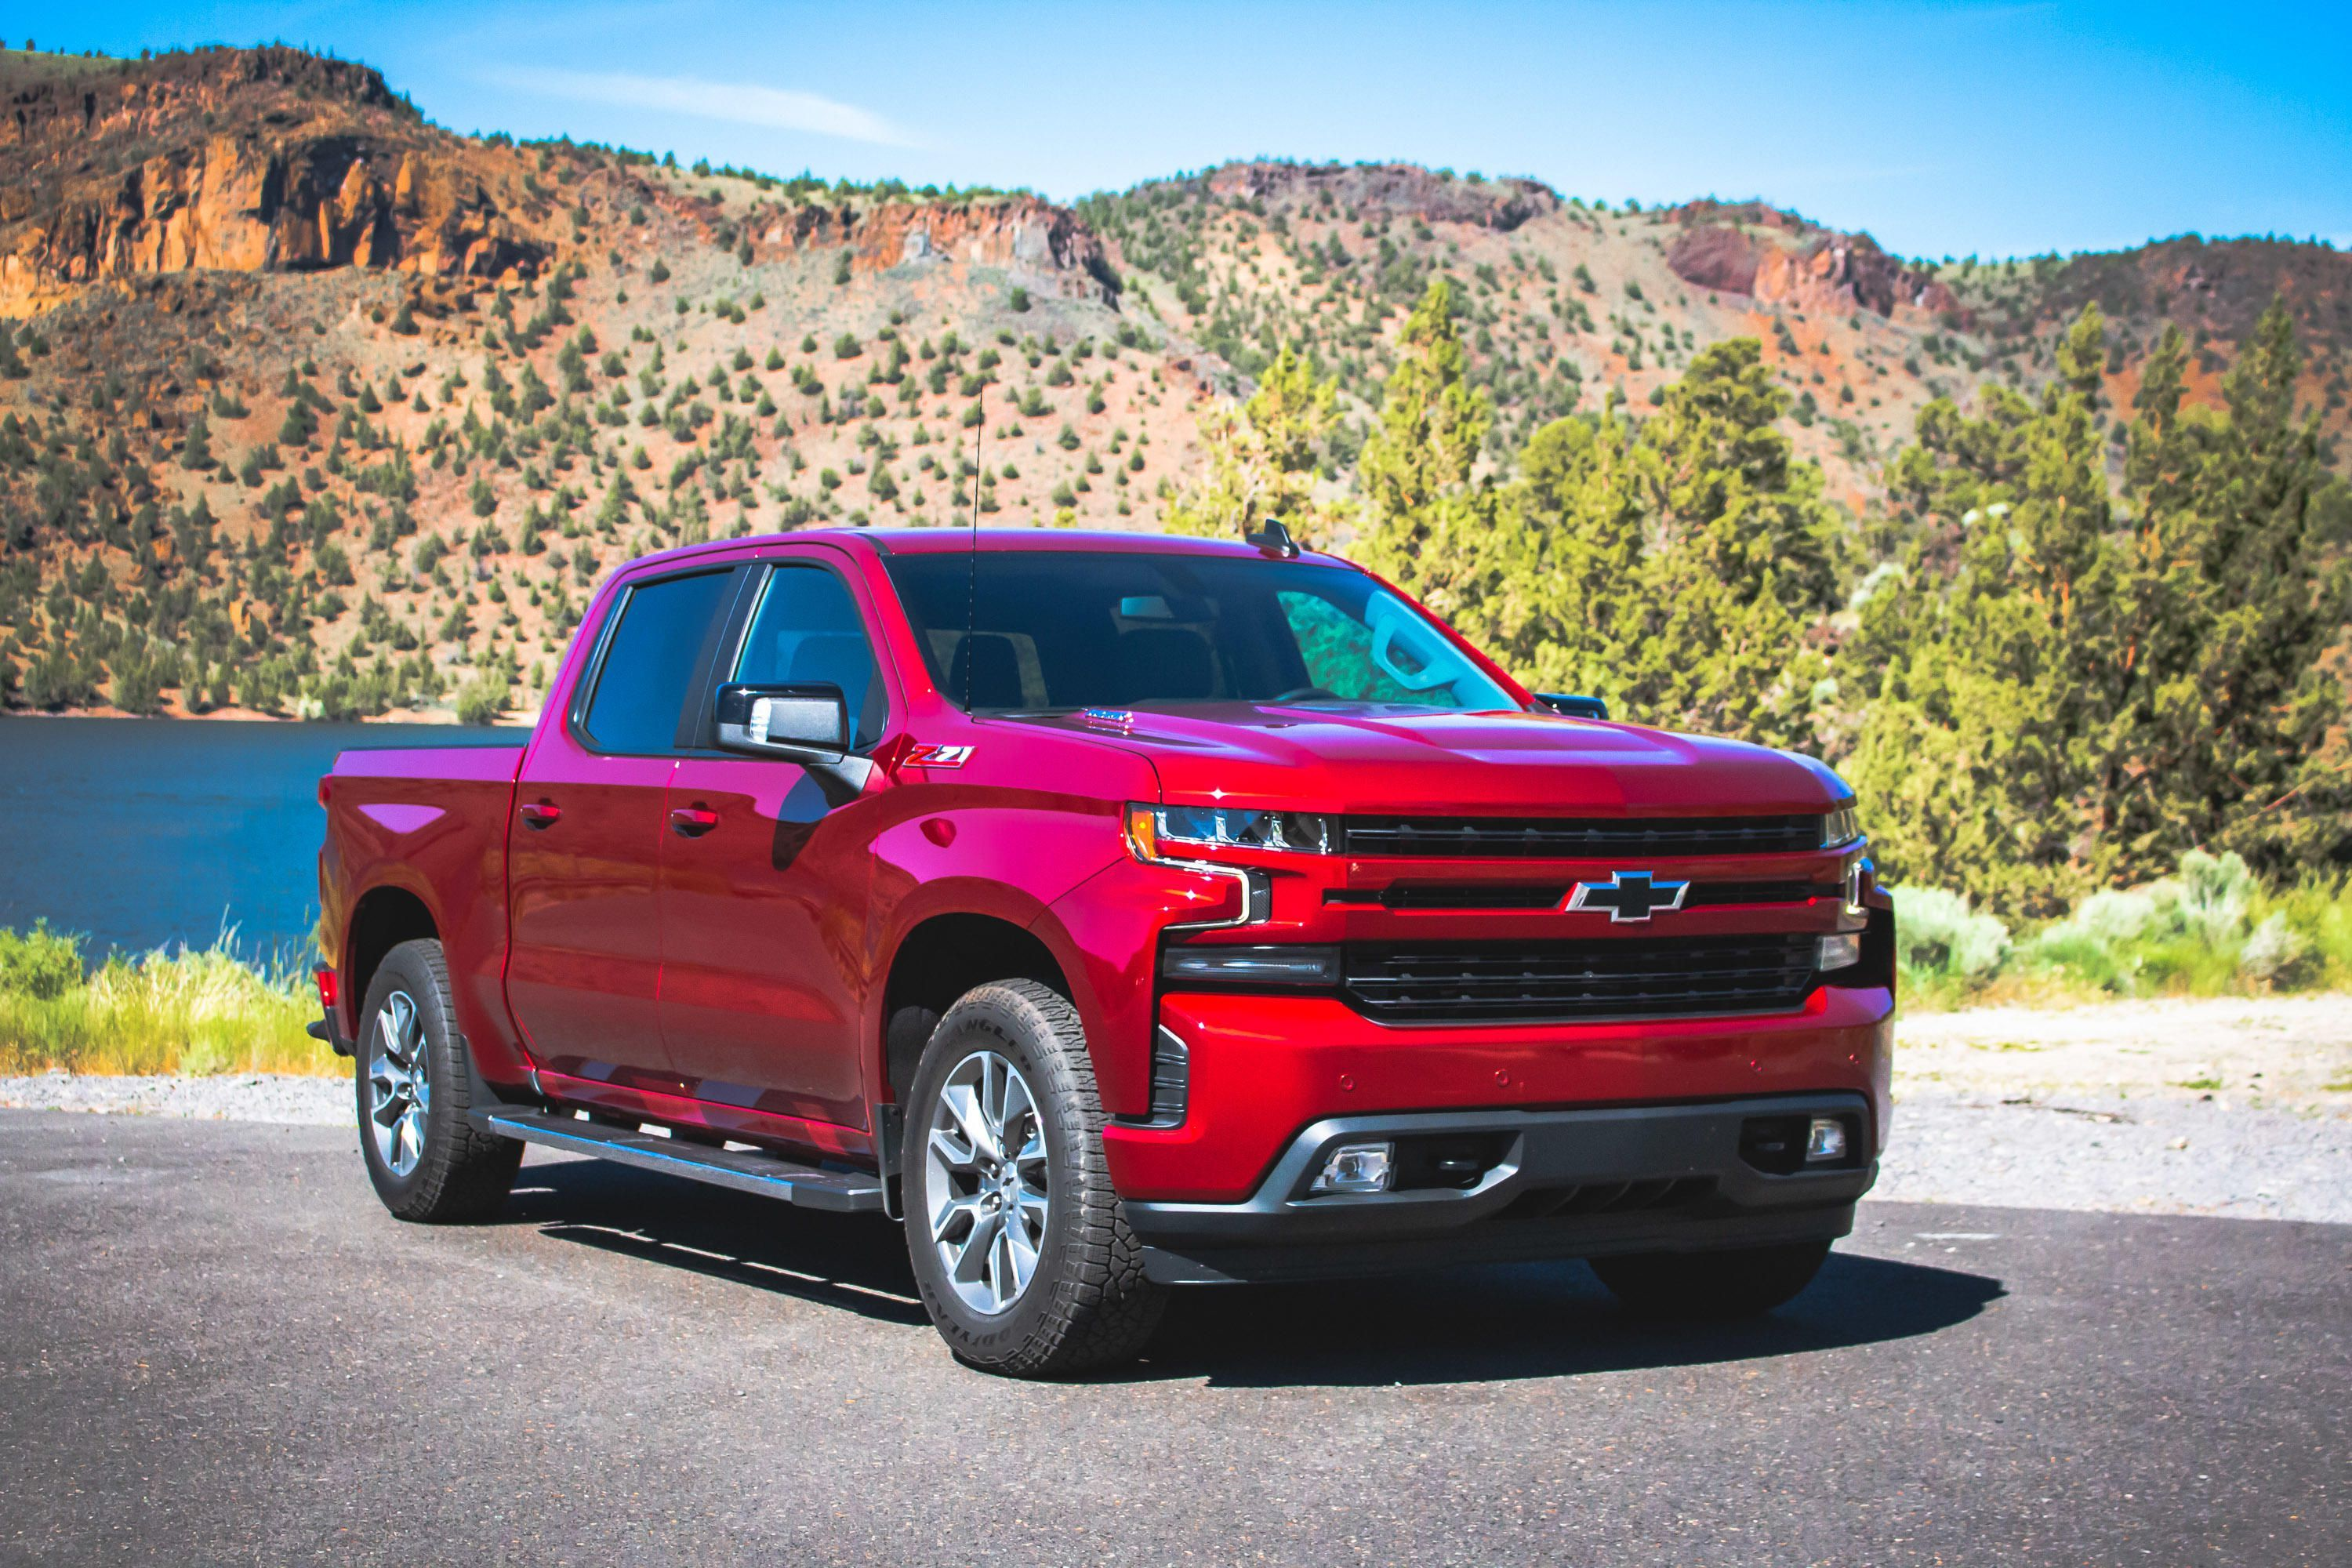 2020 Chevrolet Silverado 1500 Rst Msrp Horsepower Release Date Check More At Https Chevysilverado2019 Com 2020 Chevrolet Silverado 1500 Rst Msrp Horsepower